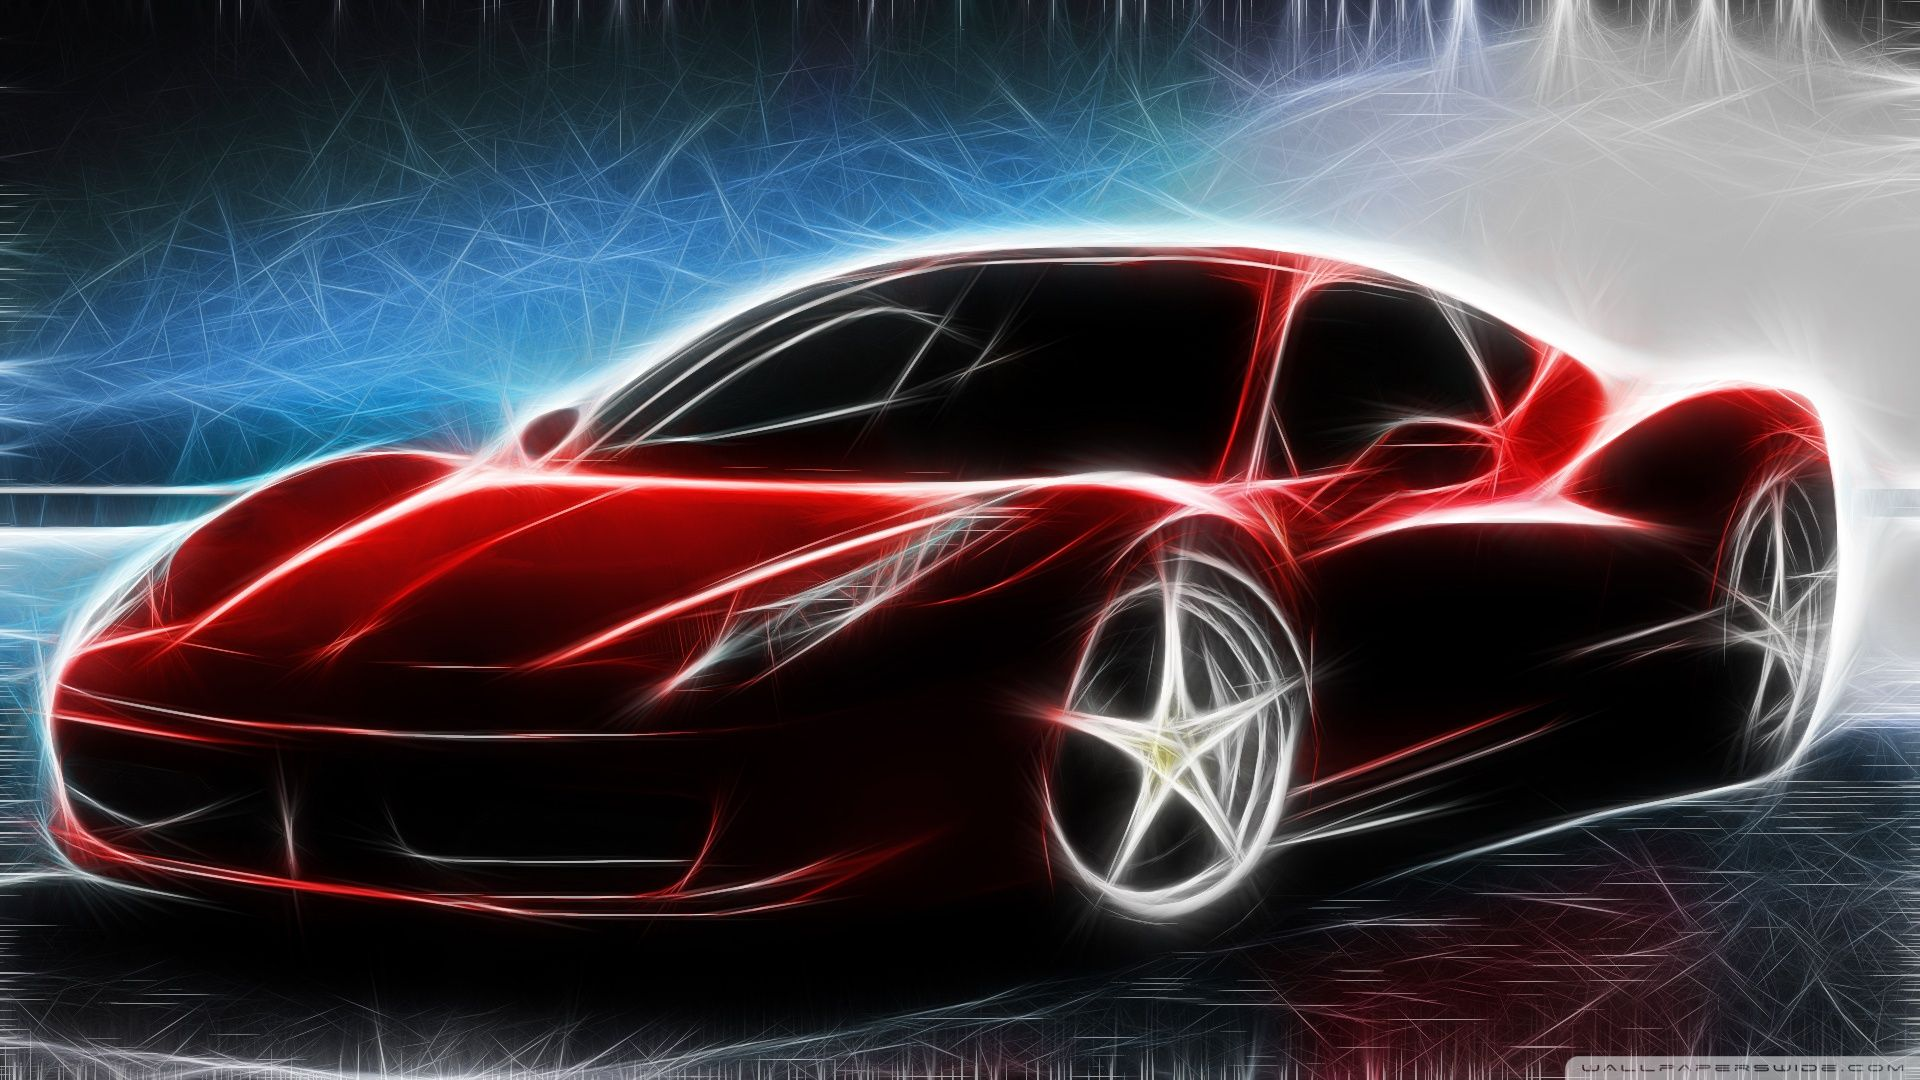 Ferrari Wallpapers Wallpaper